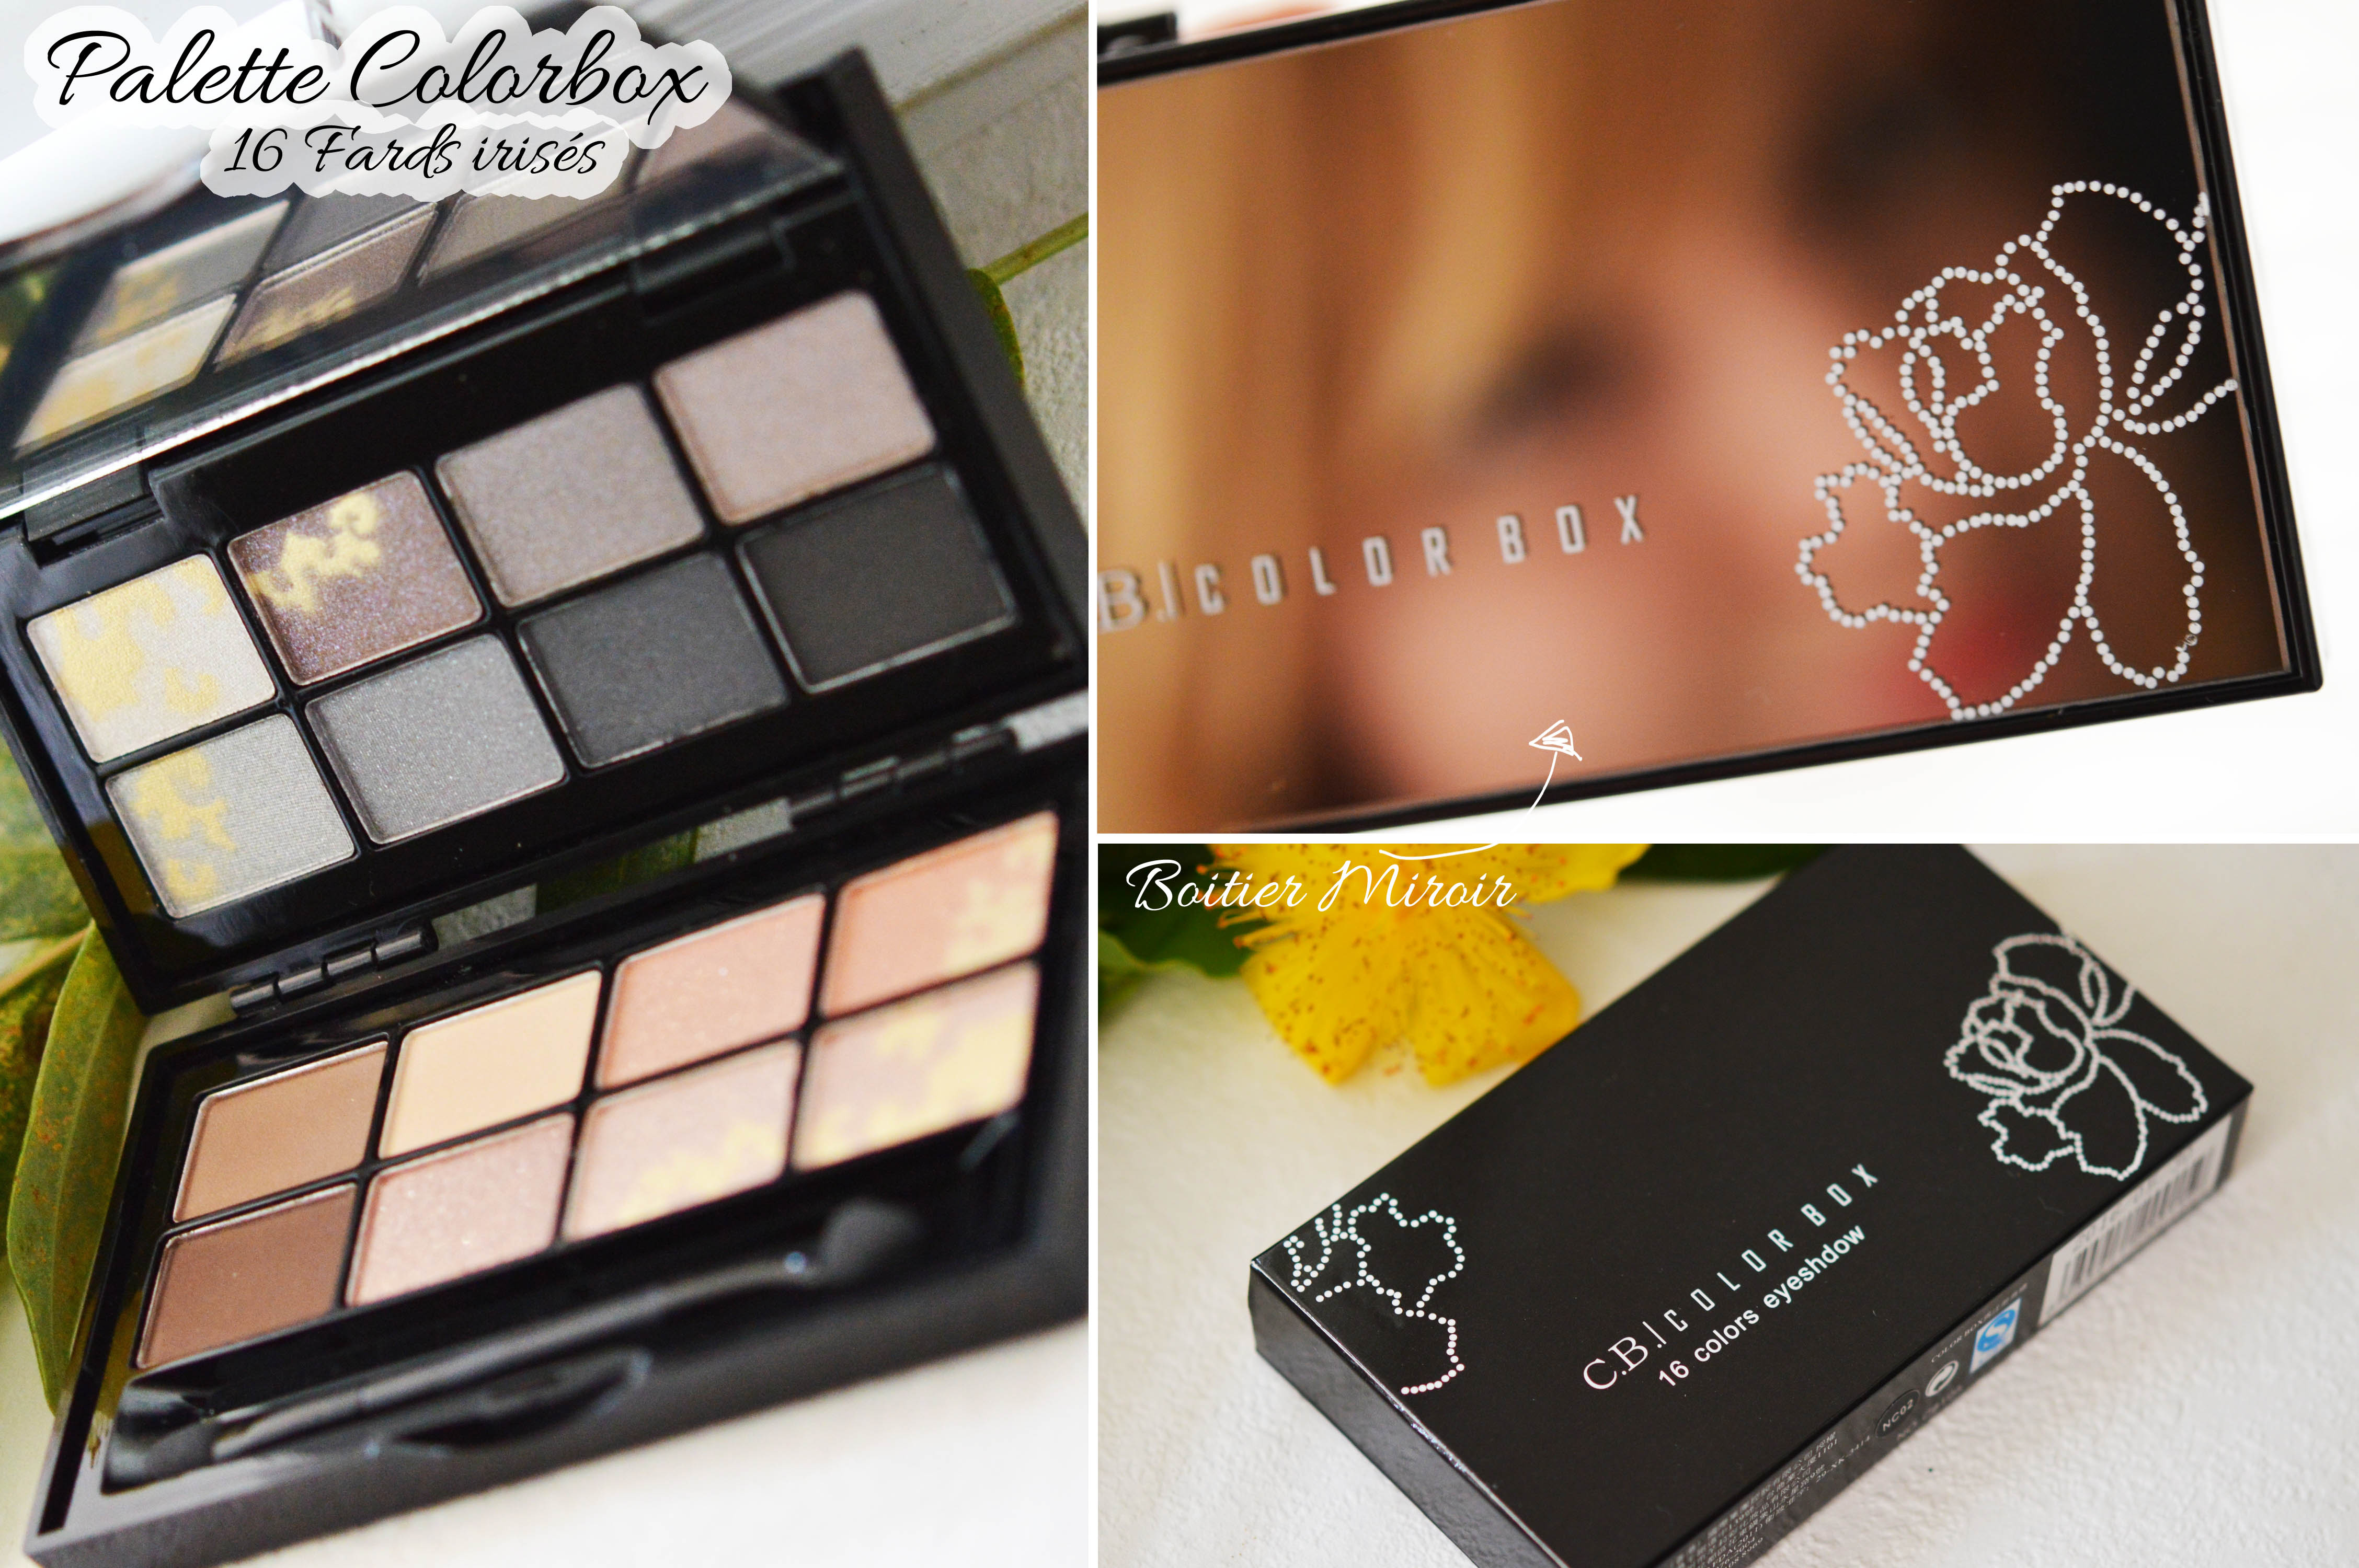 ALITTLEB_BLOG_BEAUTE_FAIRE_SON_BEAUTY_SHOPPING_PETIT_PRIX_EN_MODE_GEEKETTE_ON_VALIDE_OU_PAS_BORN_PRETTY_STORE_COLORBOX_PALETTE_16_TEINTES_IRISES_BOITIER_PACKAGING